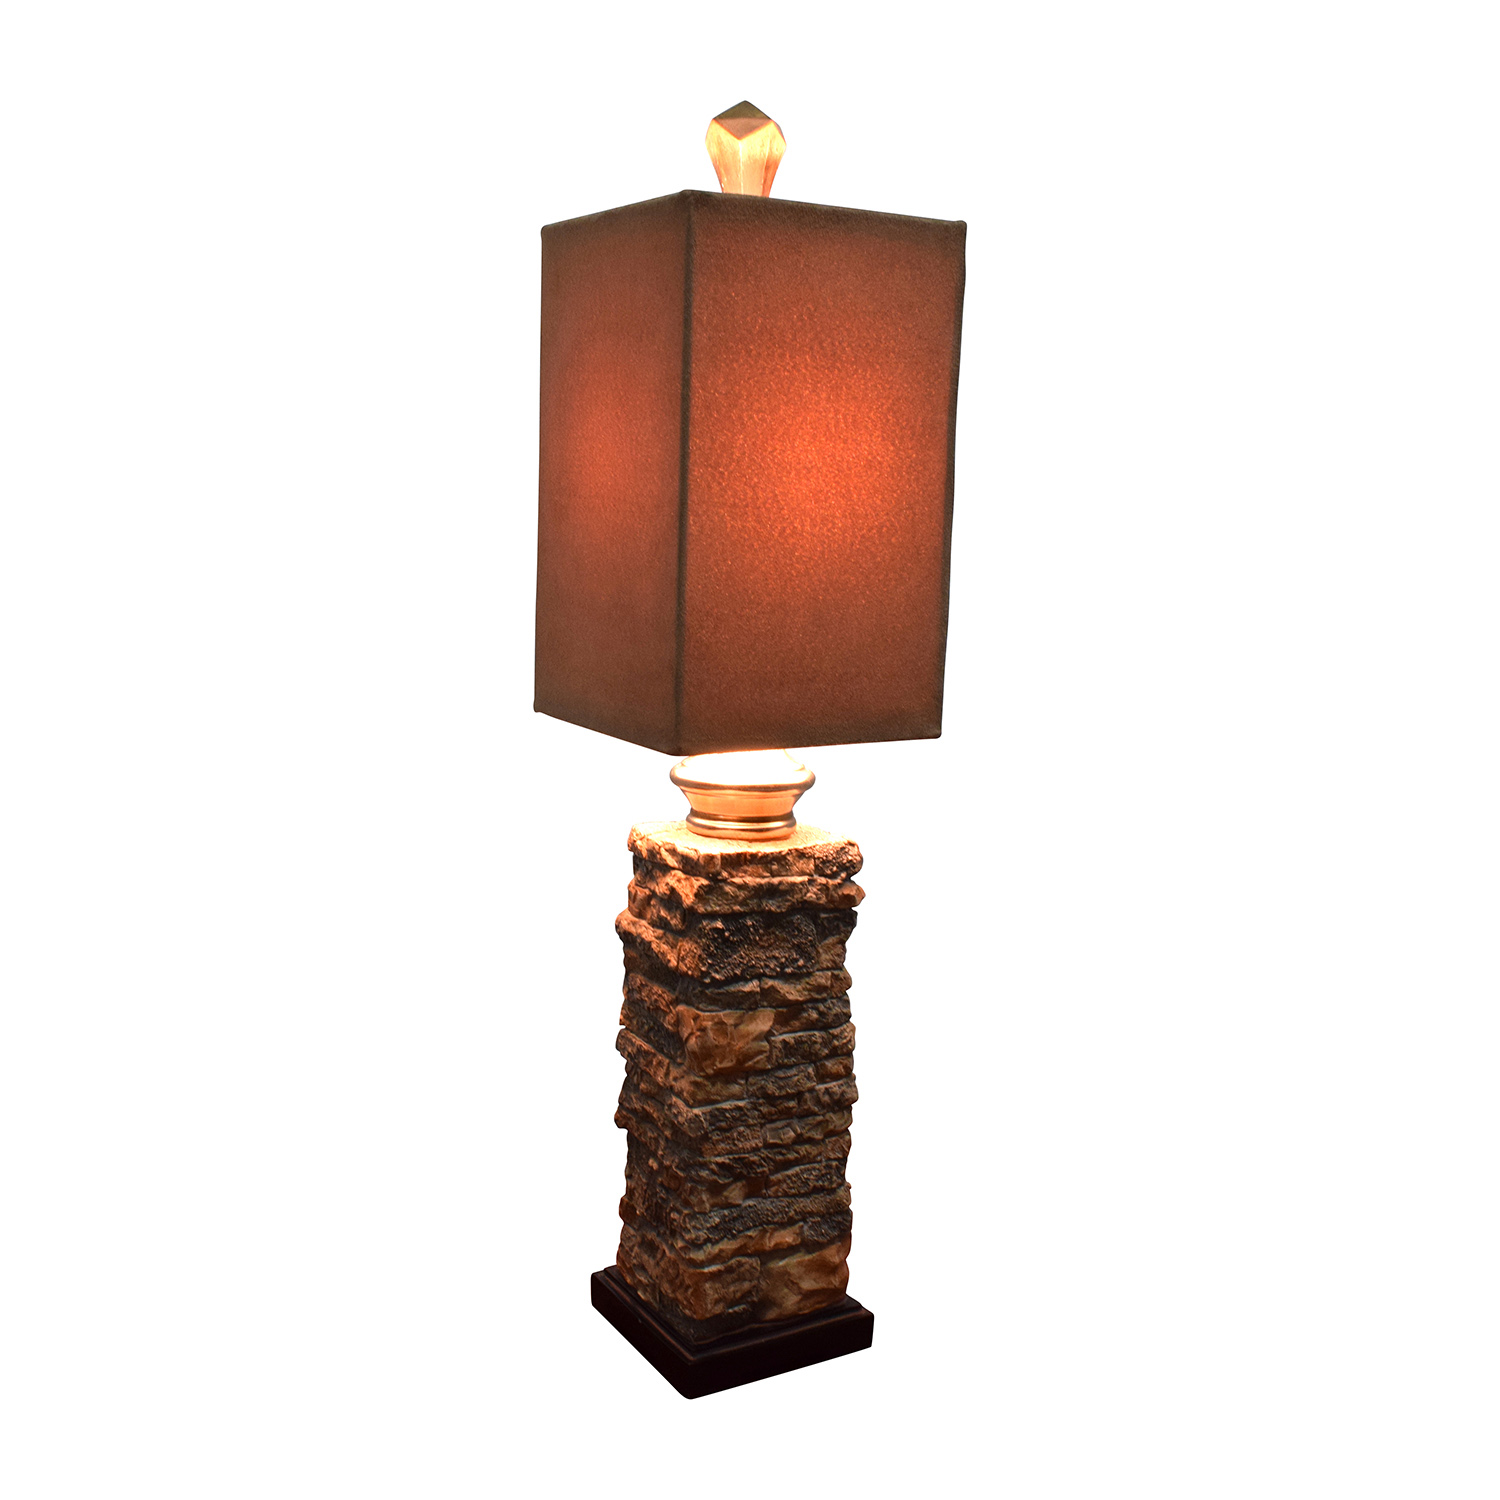 uttermost uttermost andean stone finish table lamp nyc